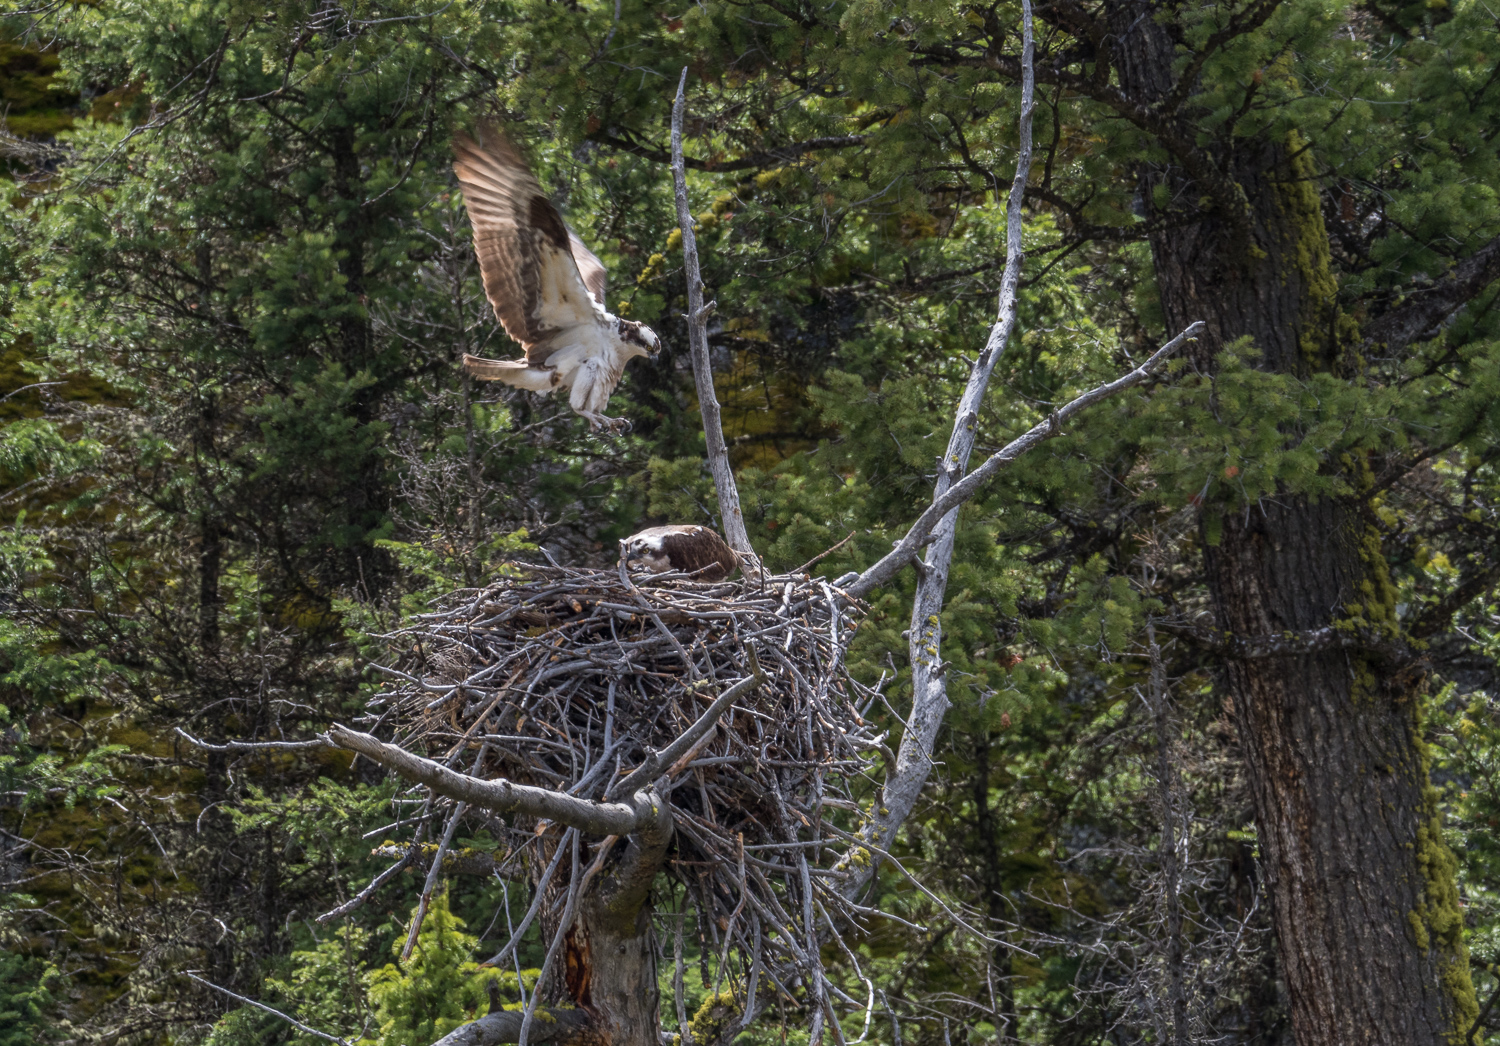 Ospreys in Lamar Canyon